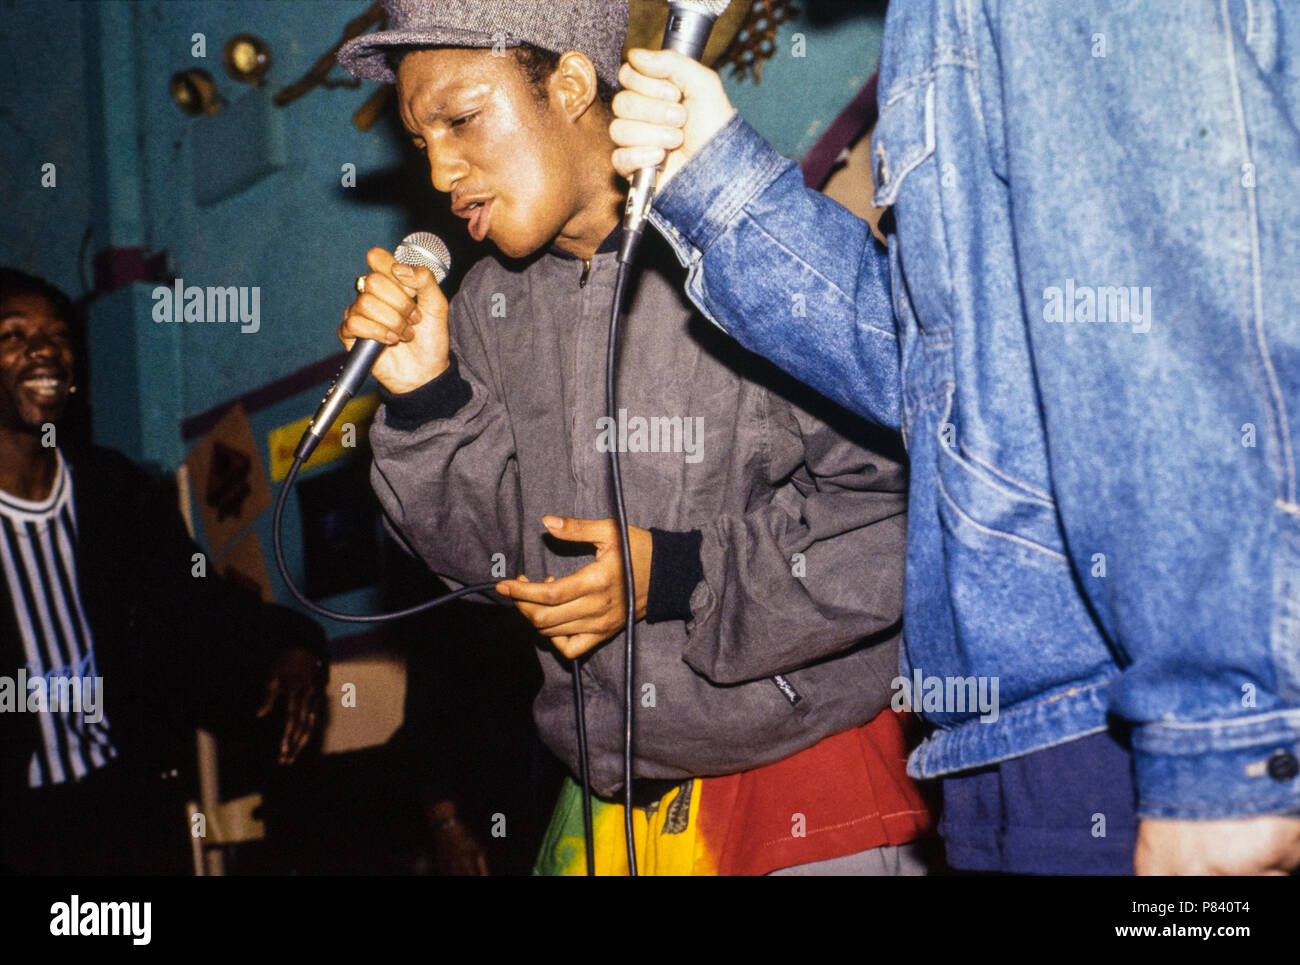 Massive Attack featuring Tricky in concert, SOBs, New York City, 30 October 1991 - Stock Image